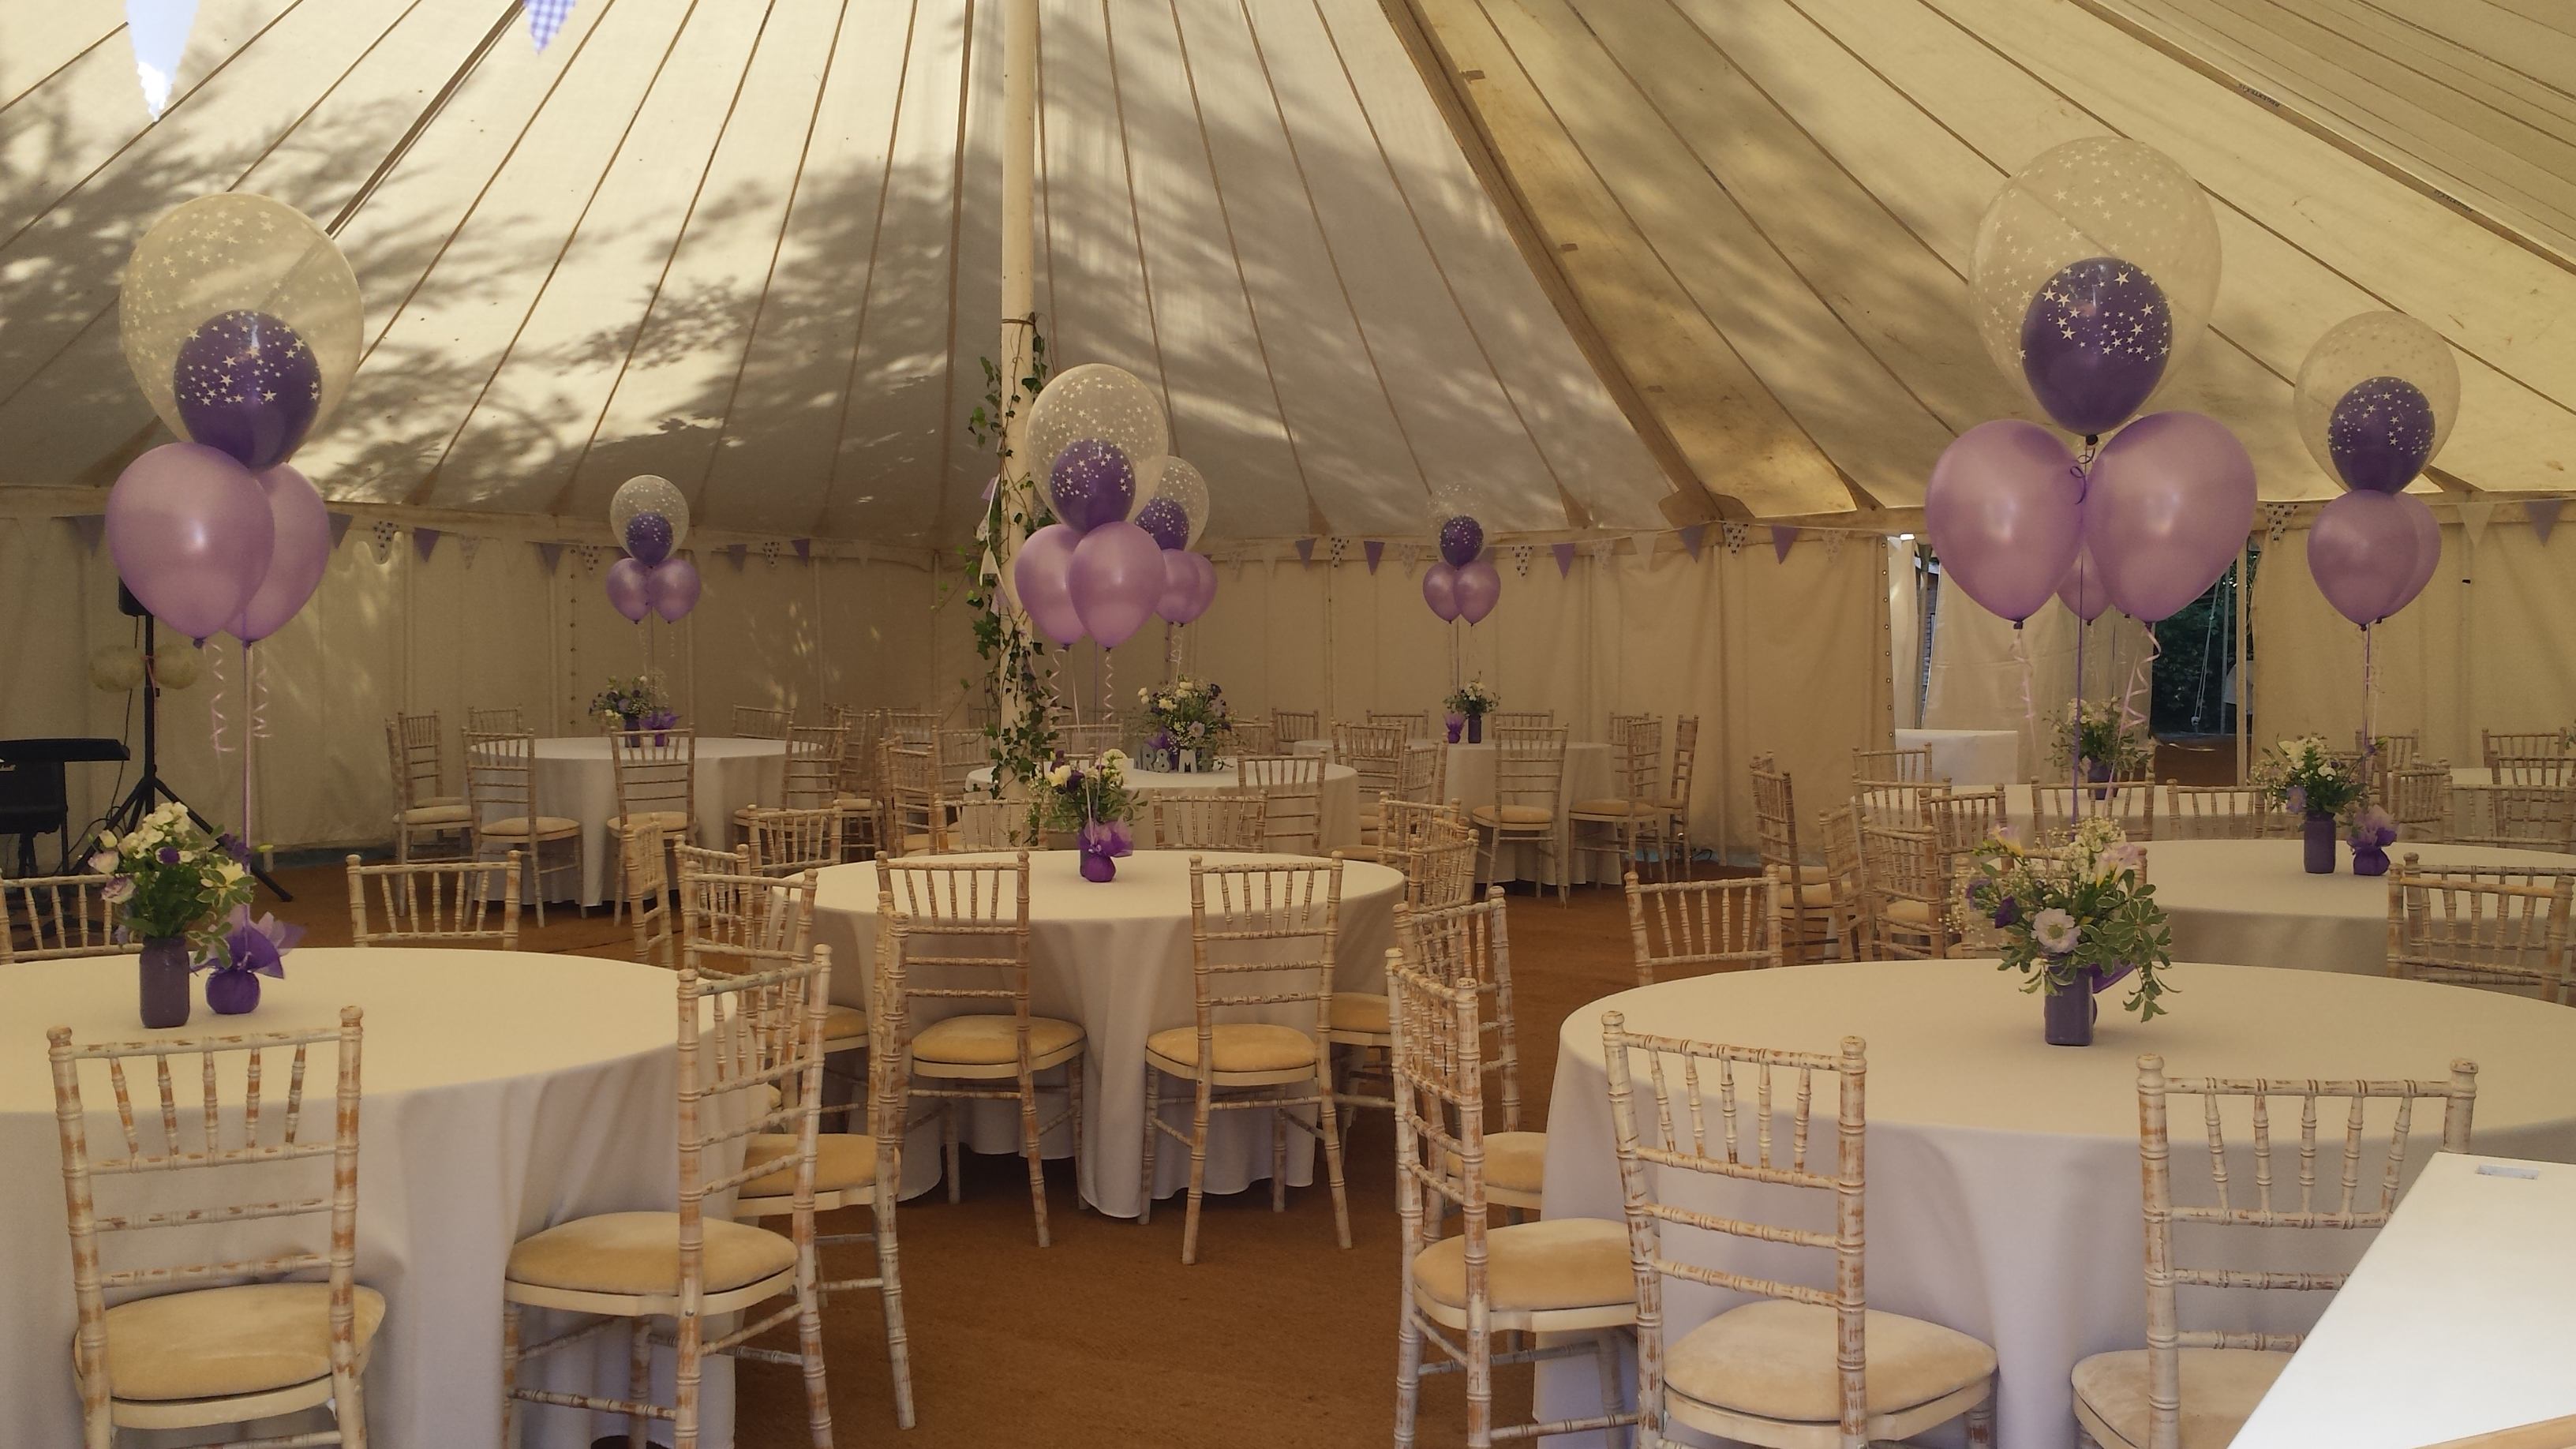 wedding chair covers hire east sussex hiring chairs cape town our services to dress venues in west and surrey